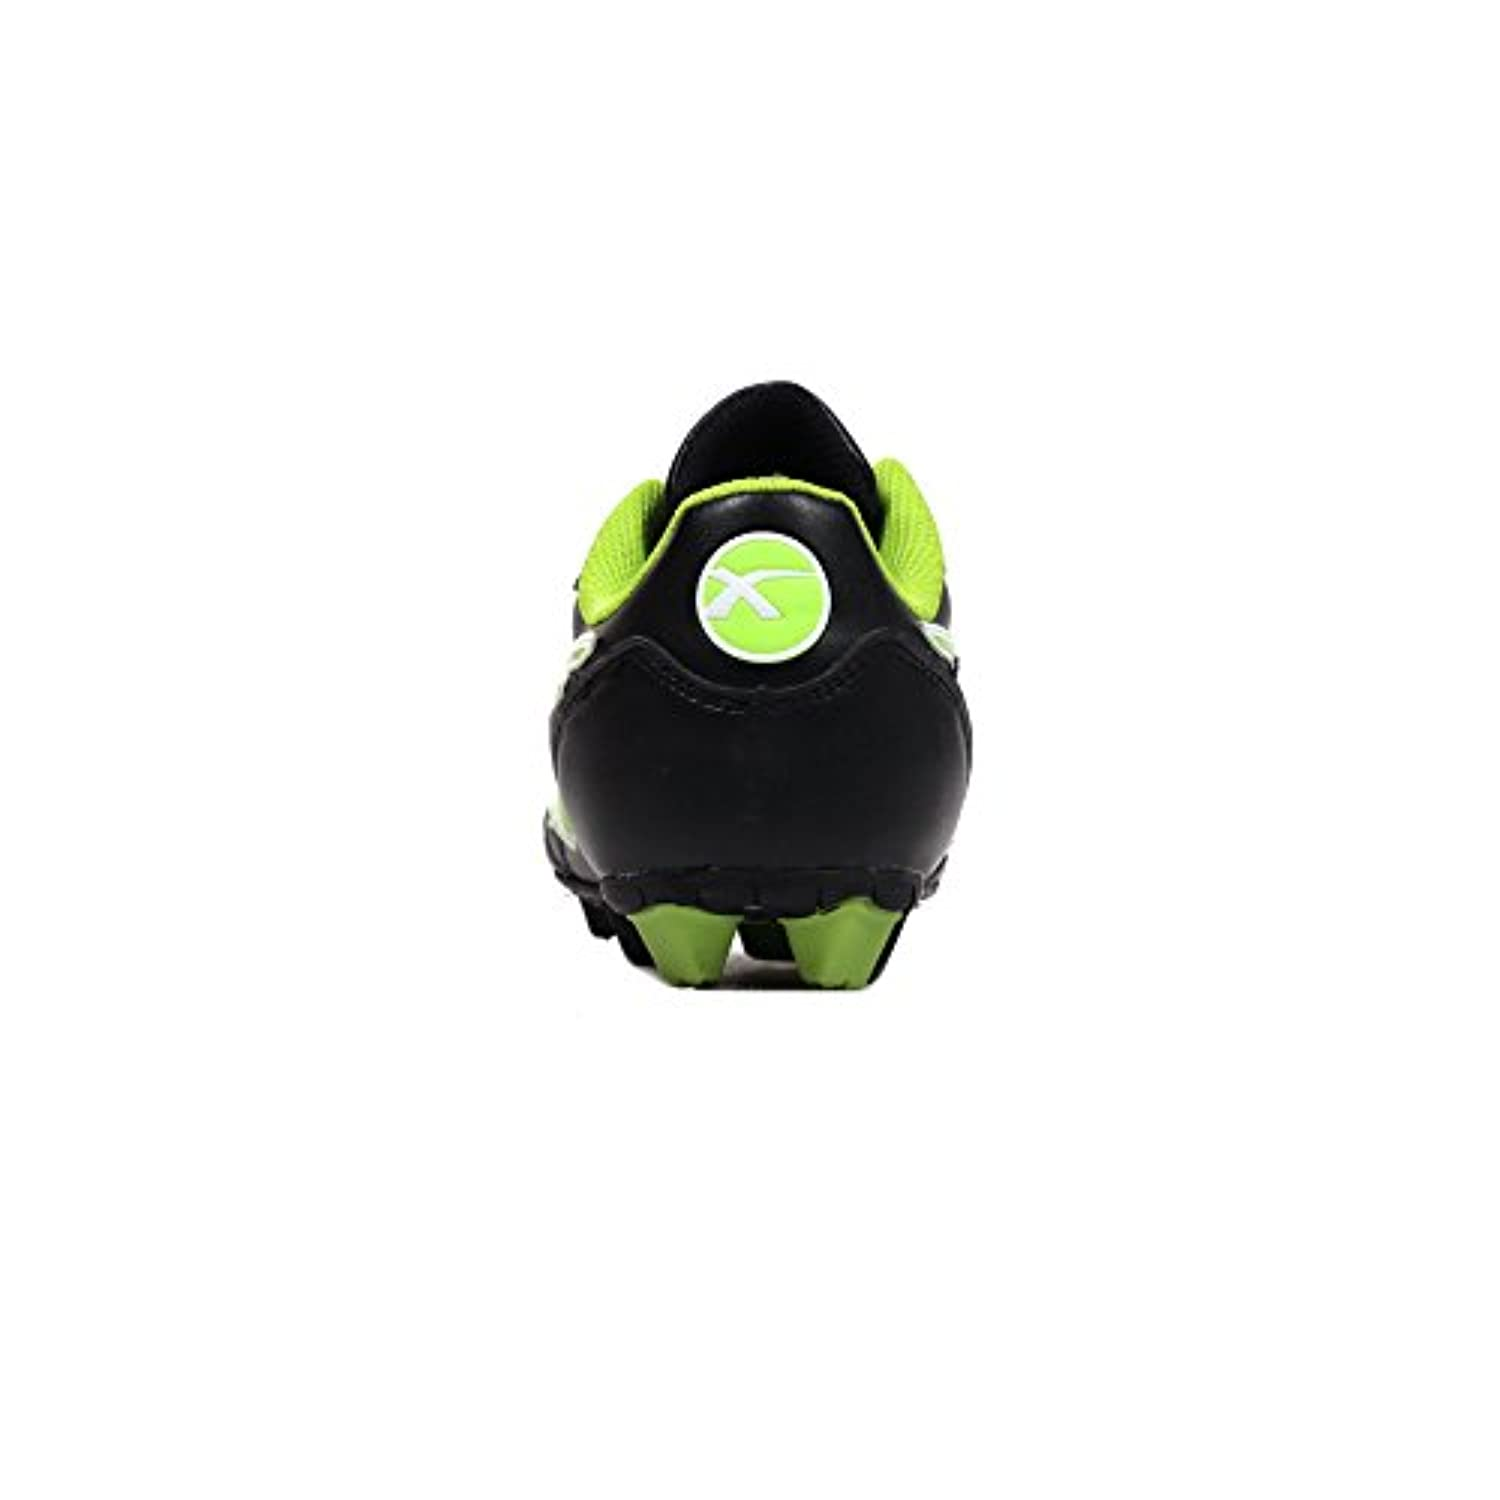 X Blades Young Legend Kids Rugby Boot Shoe Black/ Green - UK 2